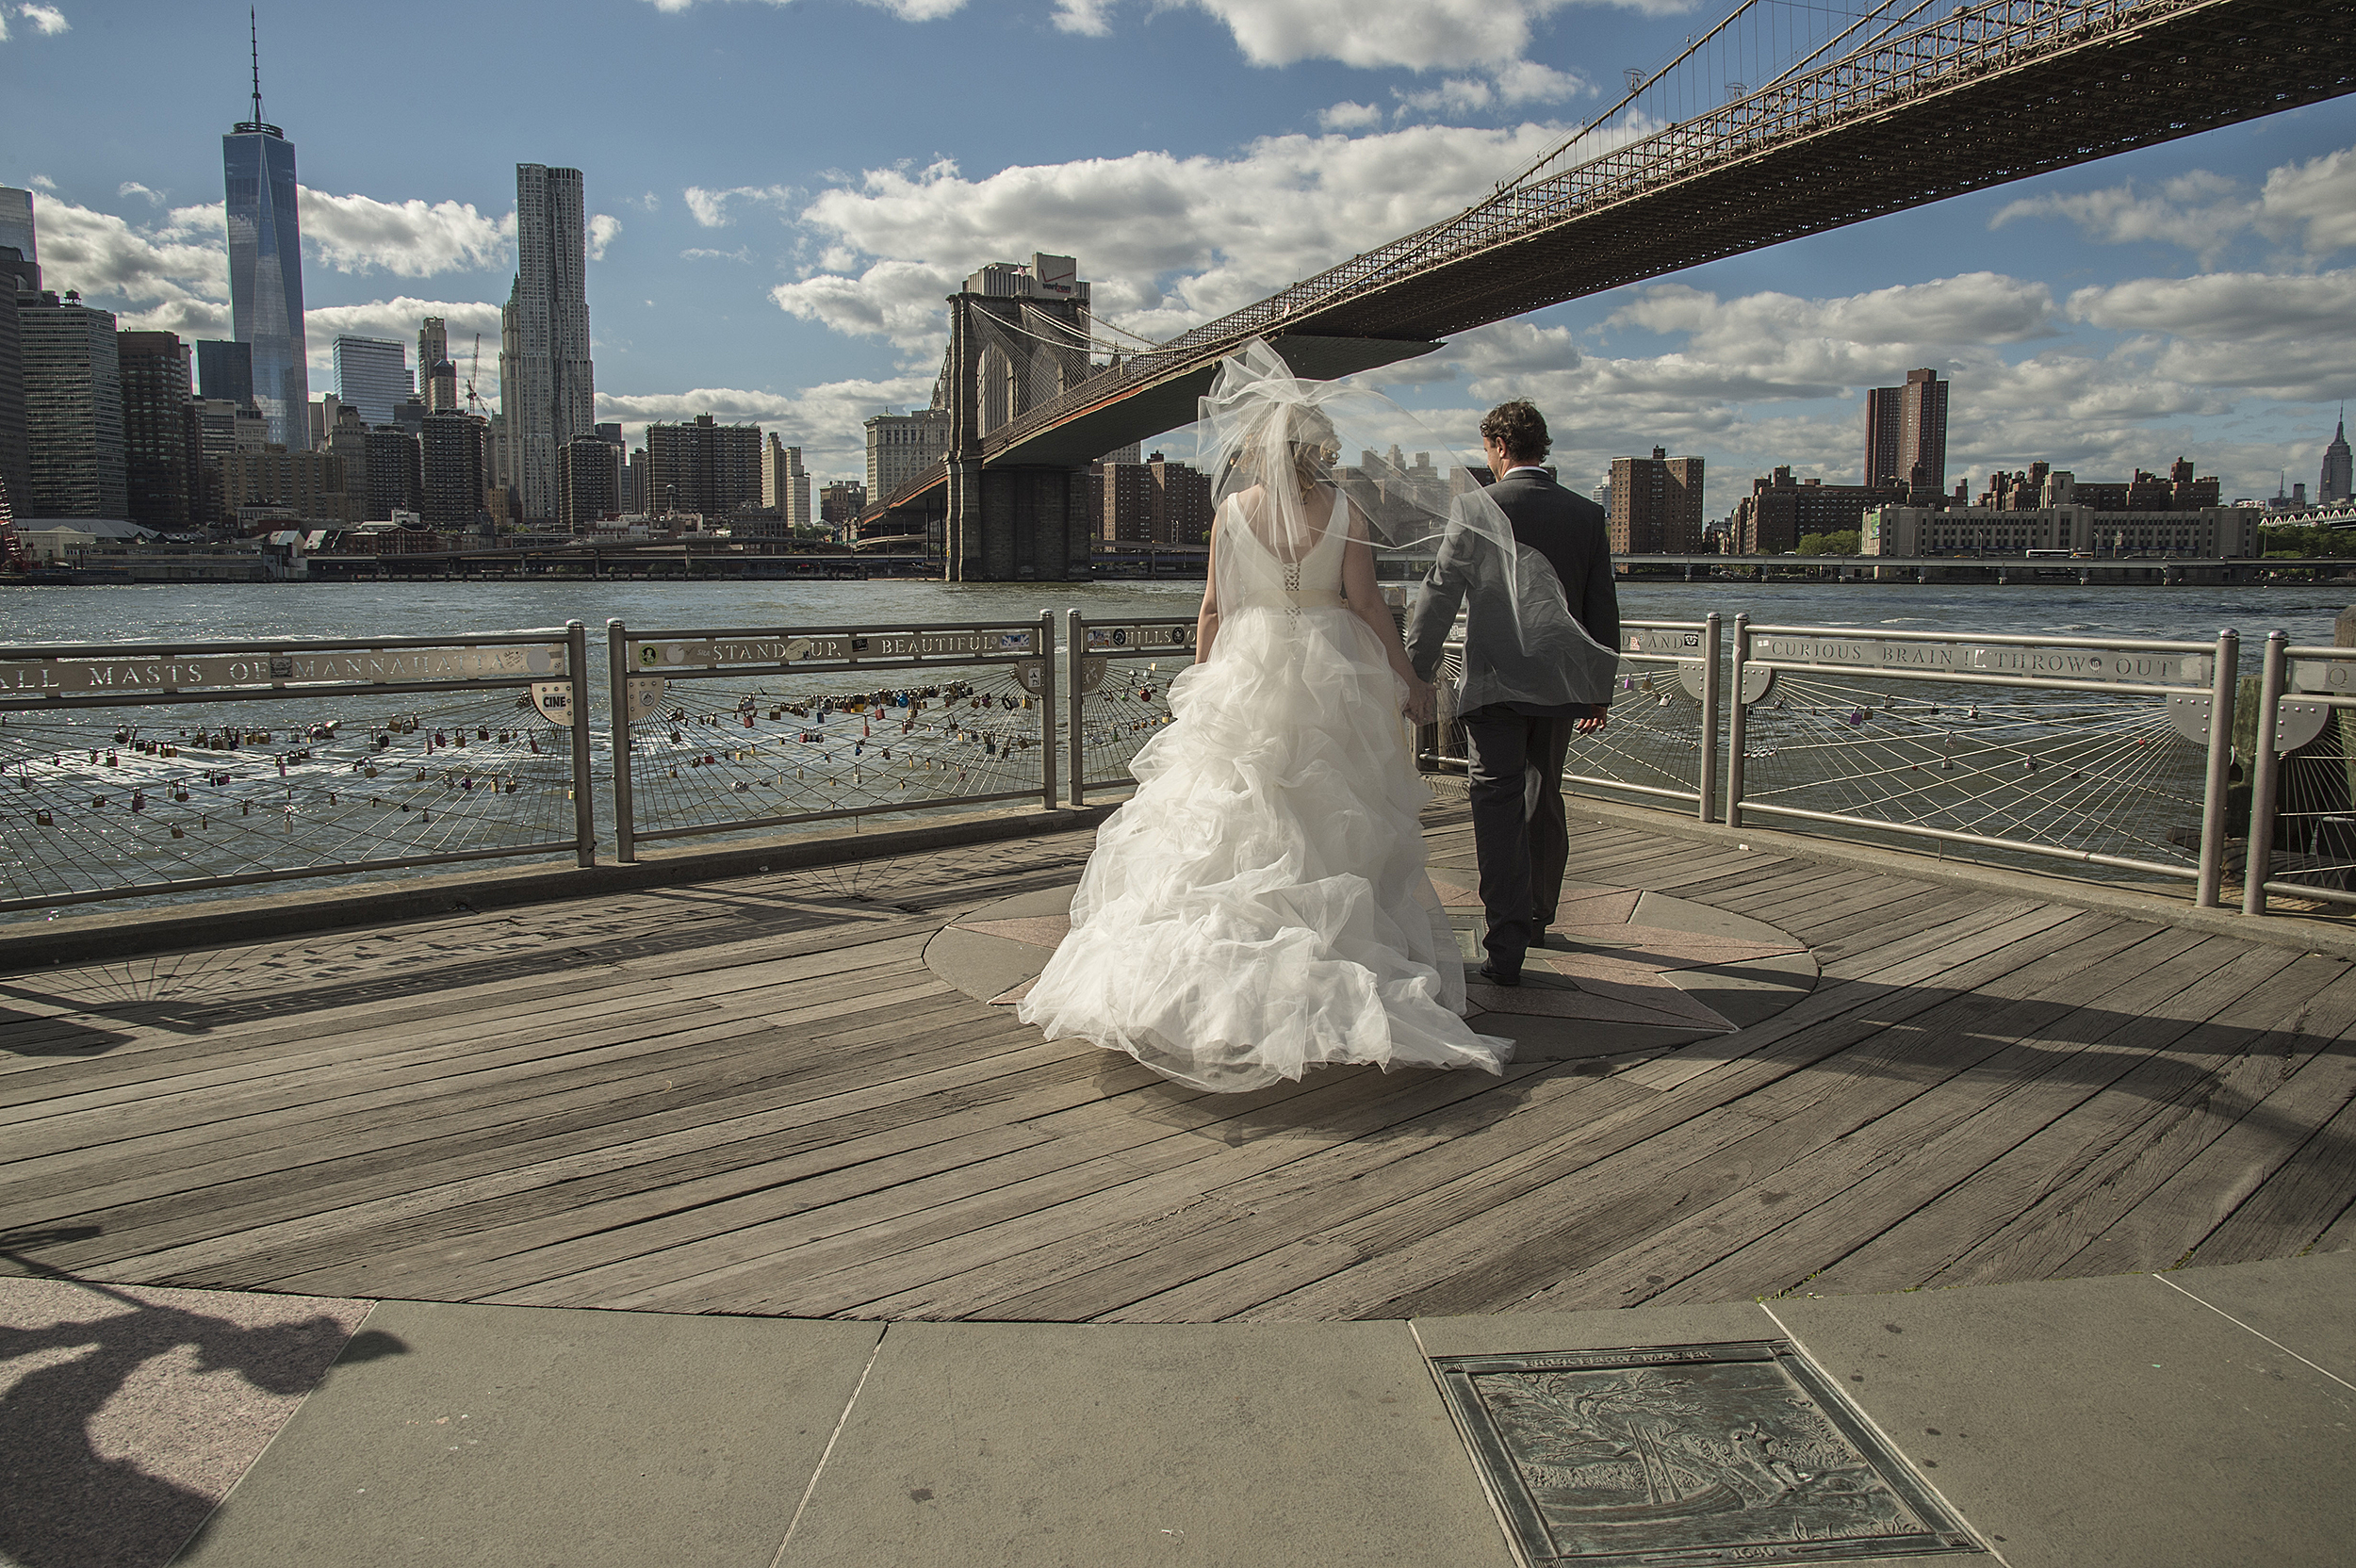 BrooklynBridge_elopement.jpg